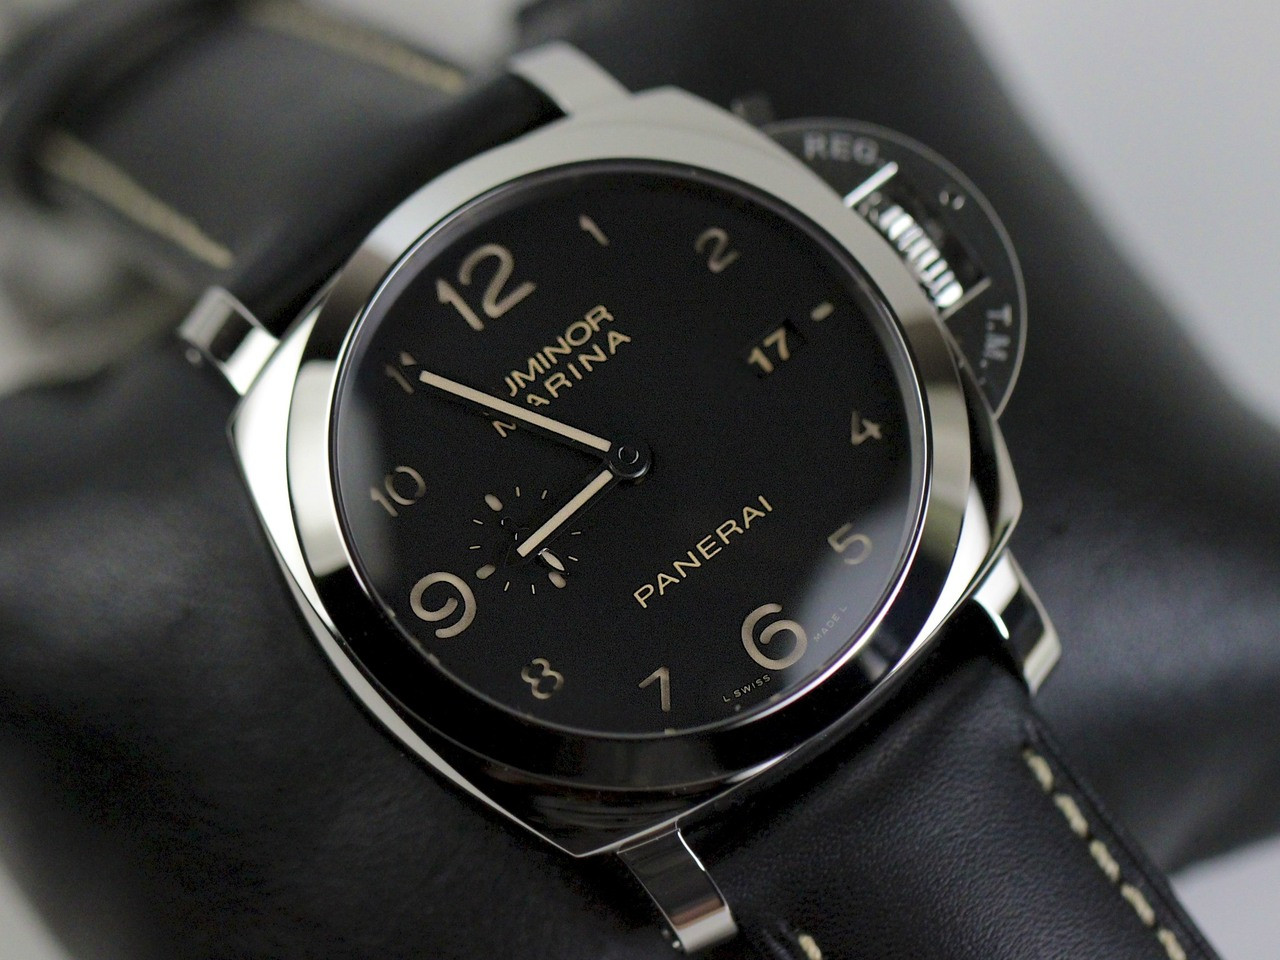 radiomir the panerai watches and p luminor history of back time front jc